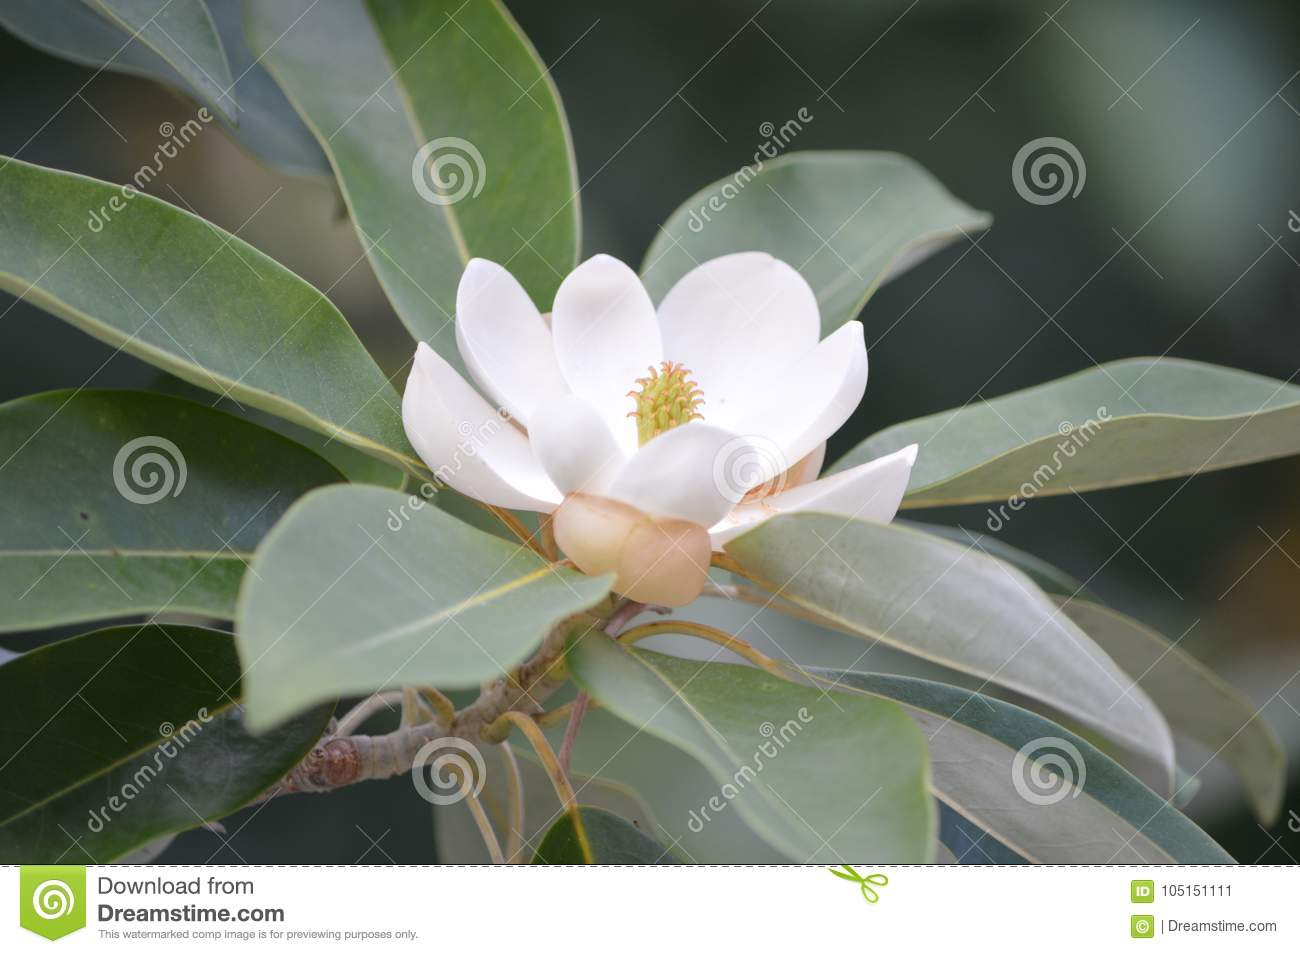 The southern magnolia tree in bloom during august stock image the beautiful southern magnolia tree in full bloom with white flowers in the middle of august in the alabama summer mightylinksfo